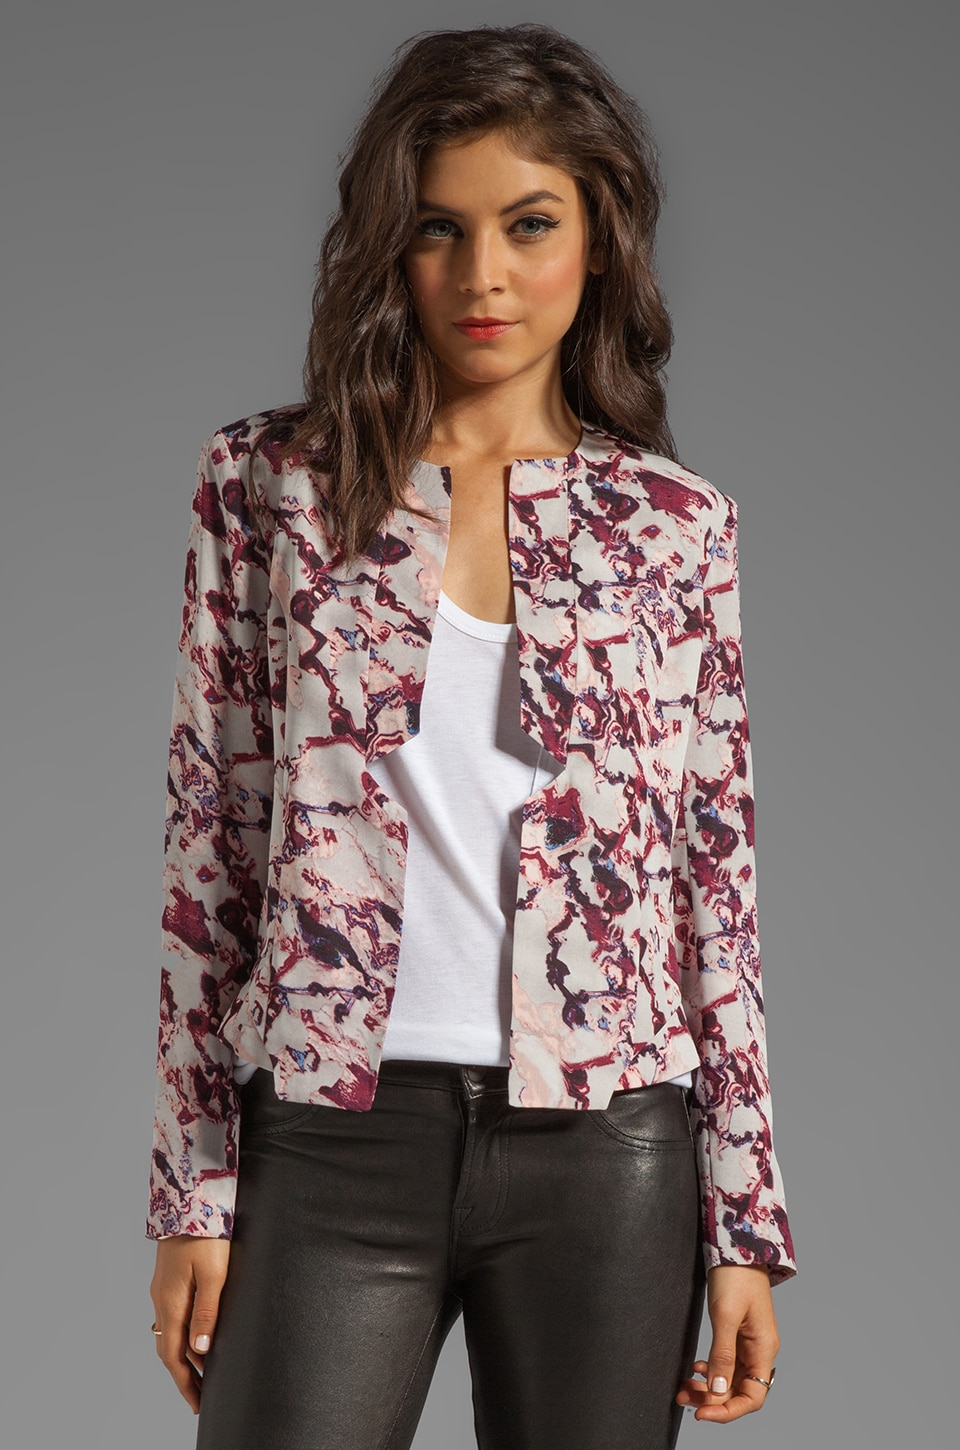 STYLESTALKER Dream Team Jacket in Sliced Crystal Print